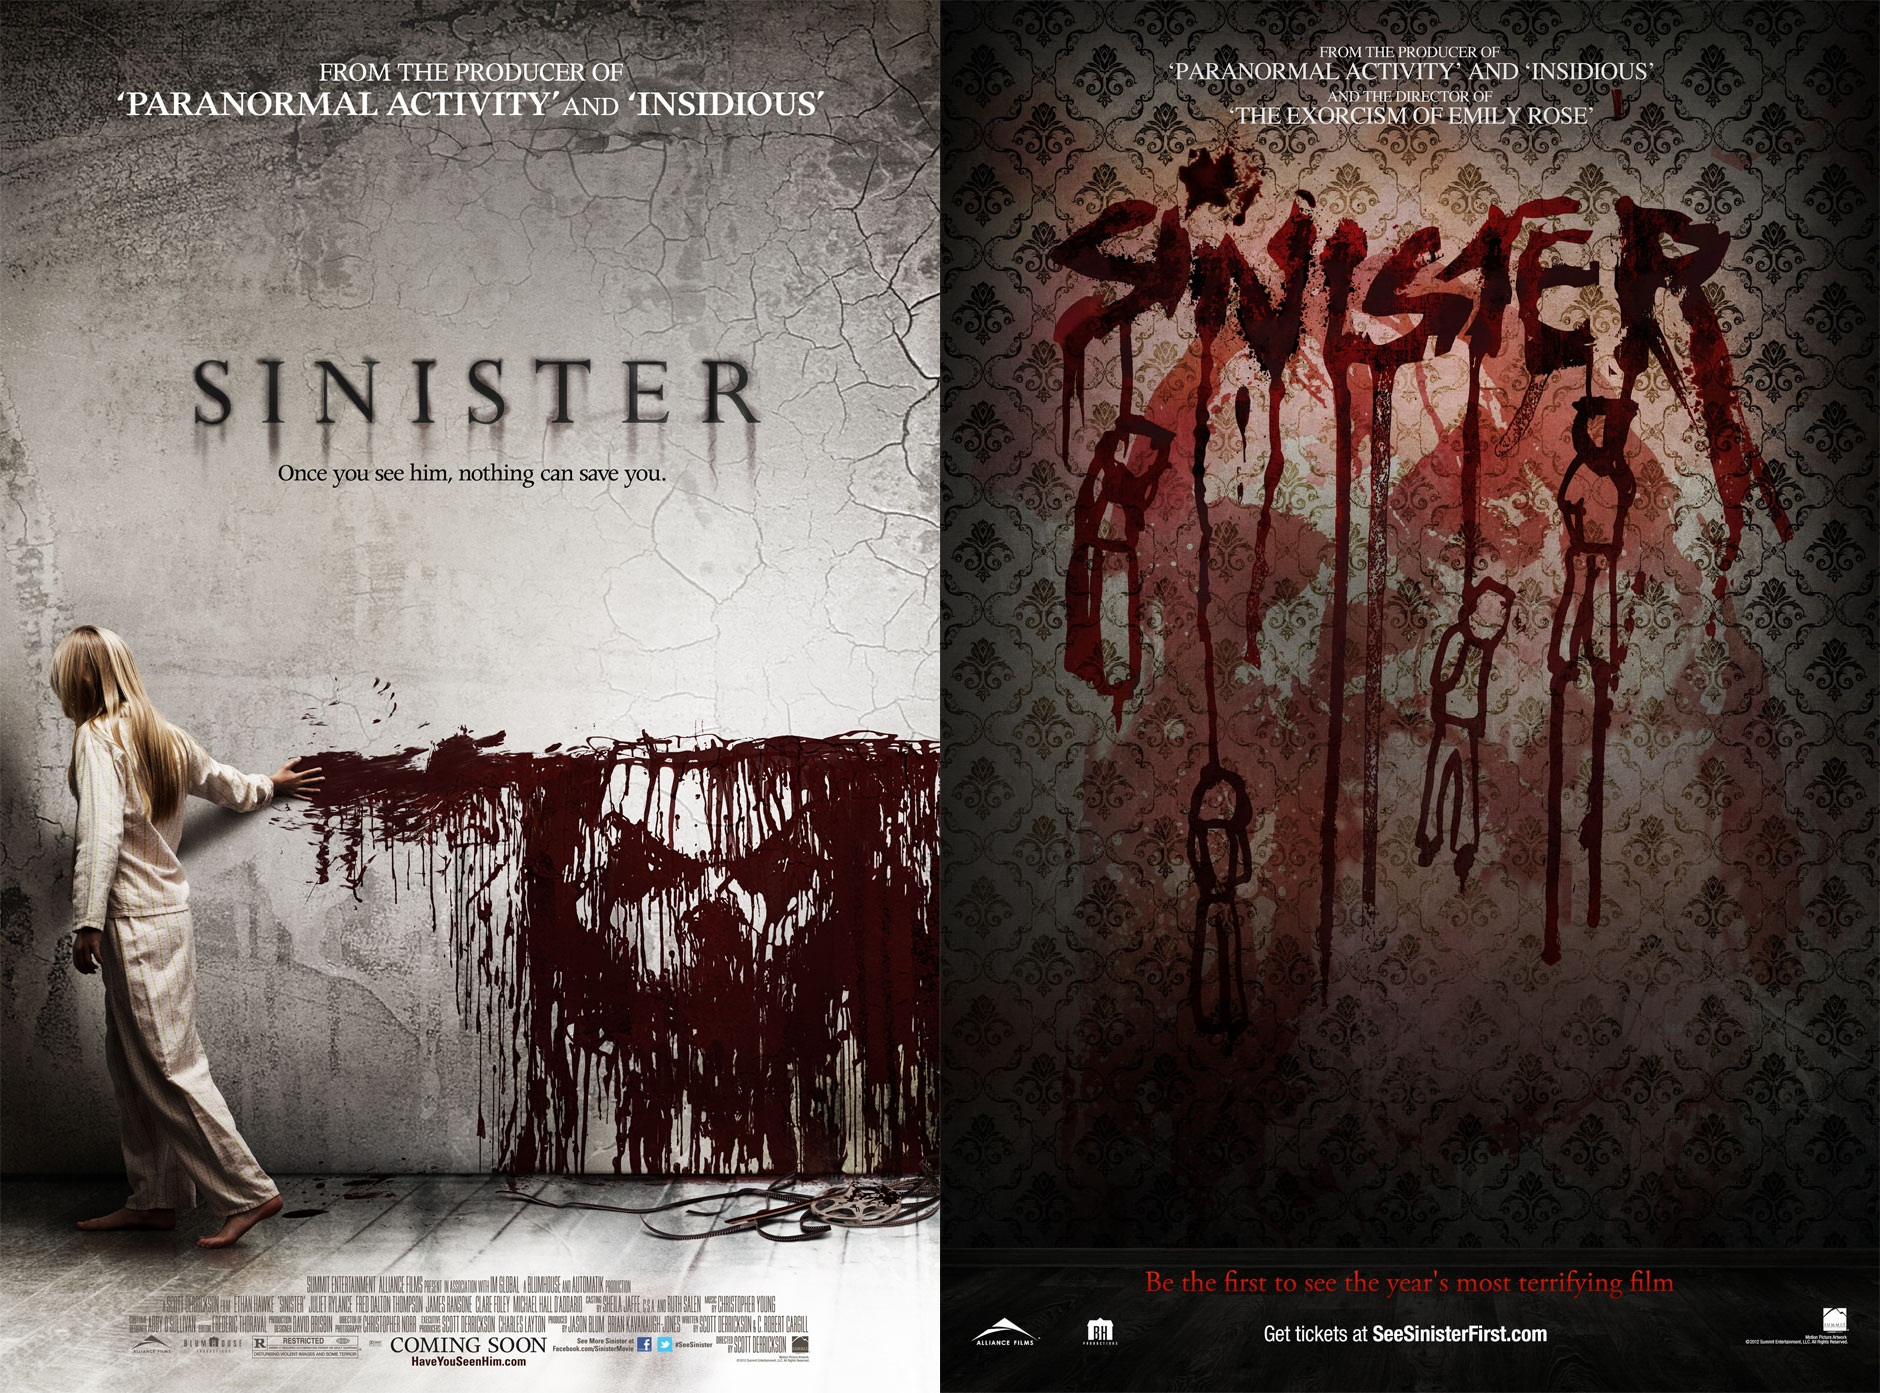 Sinister (2012):The Lighted